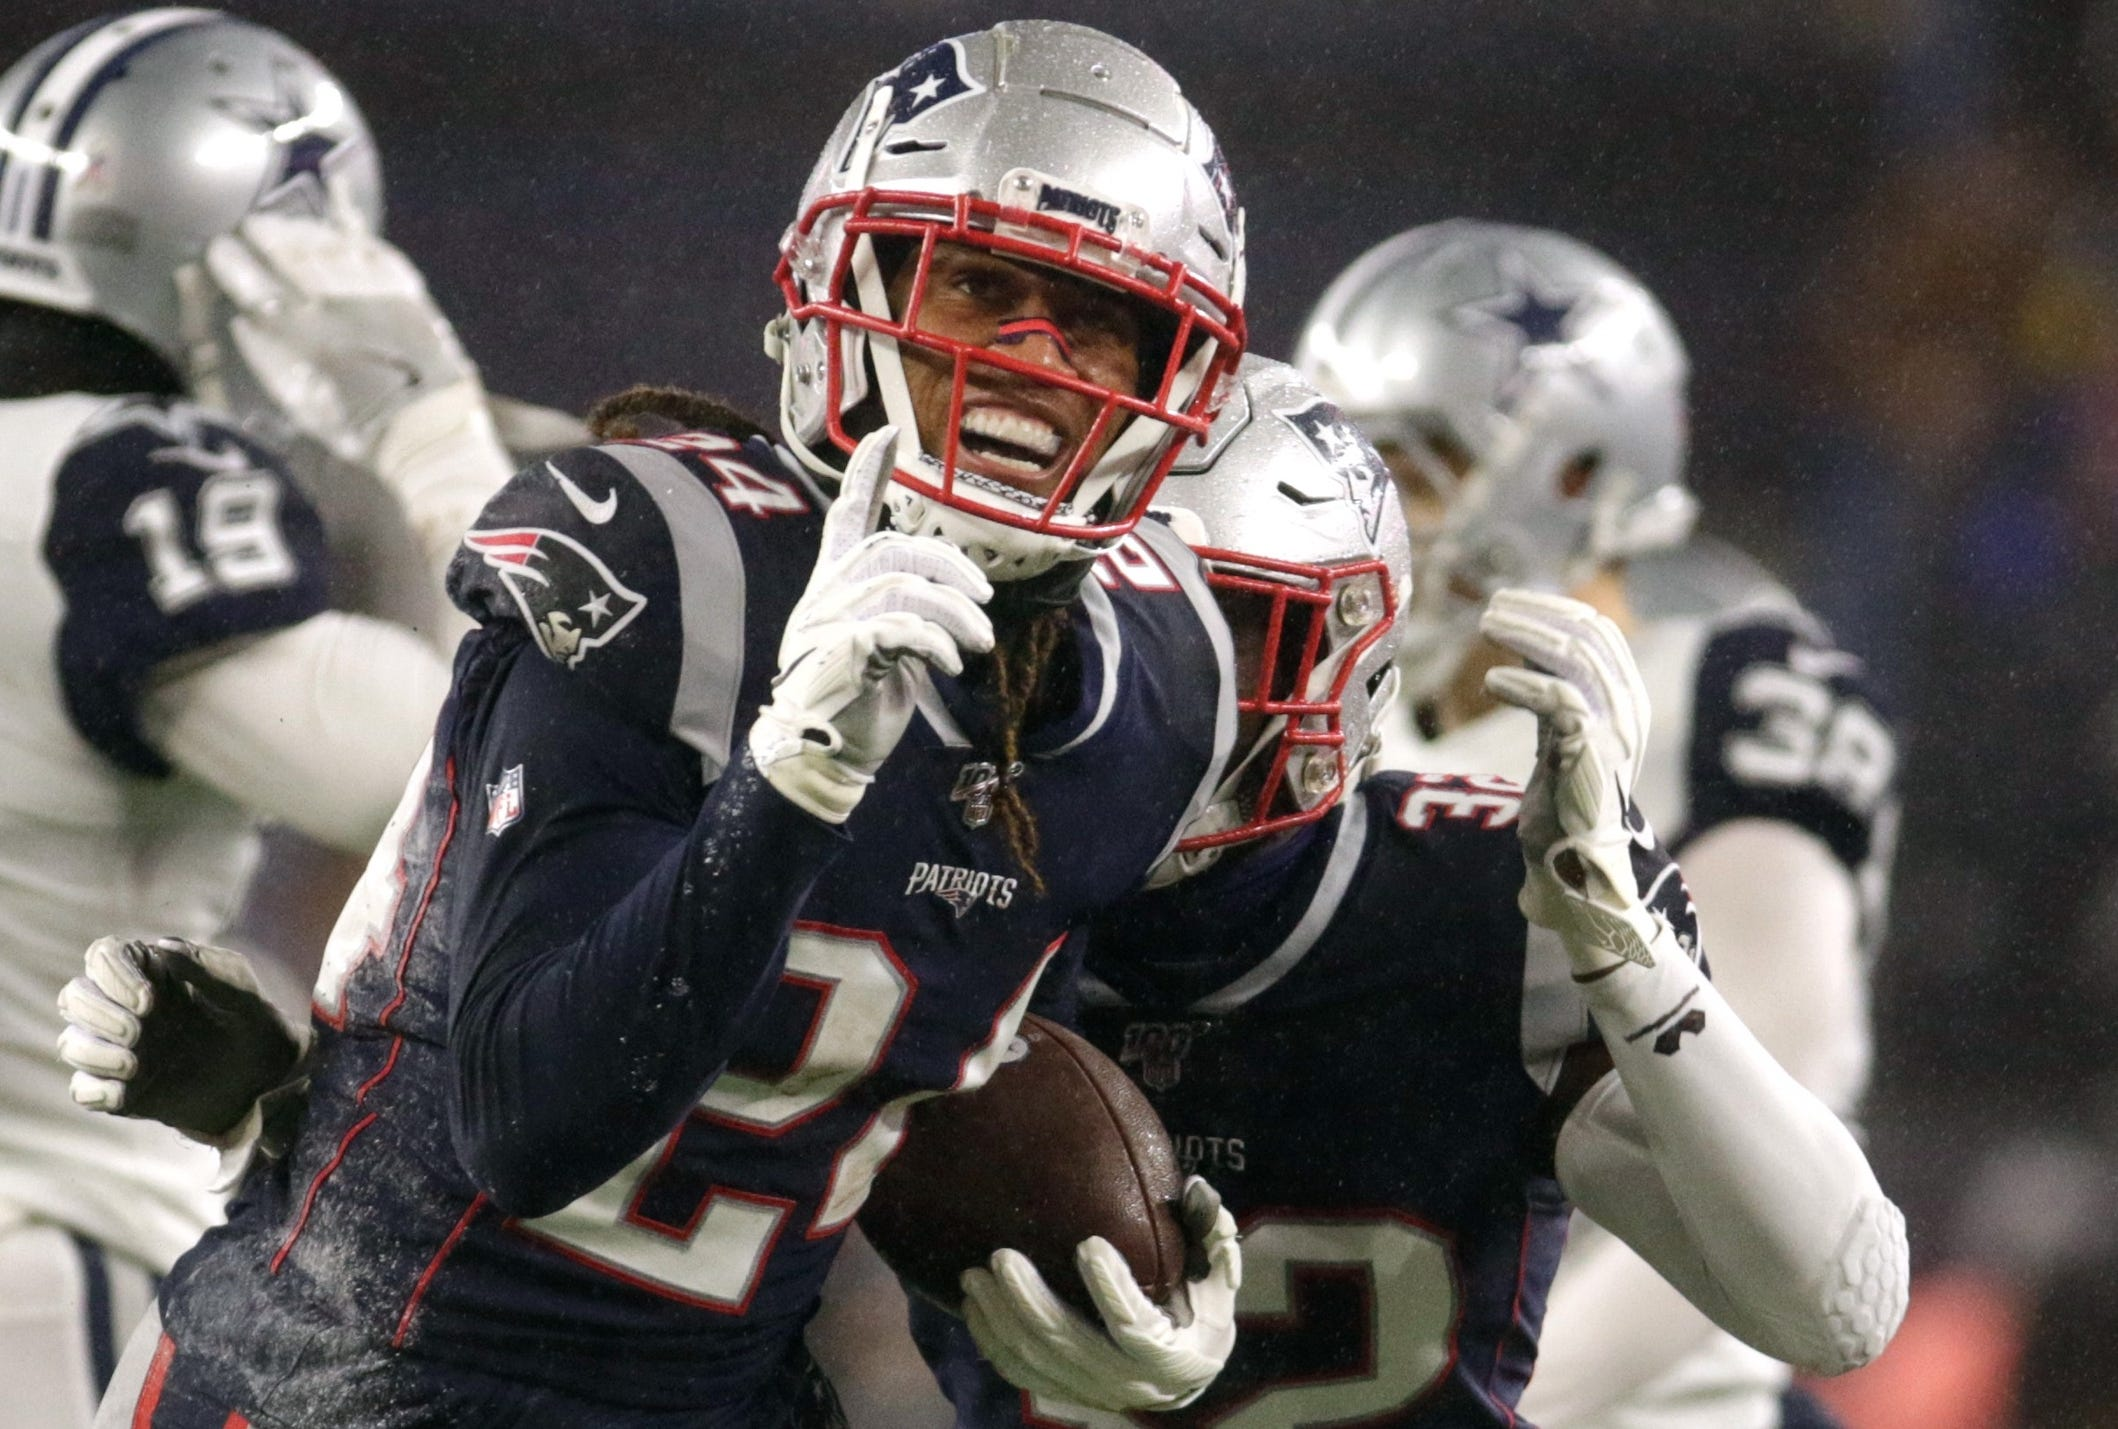 Opinion: The Patriots need to pay up for star cornerback Stephon Gilmore